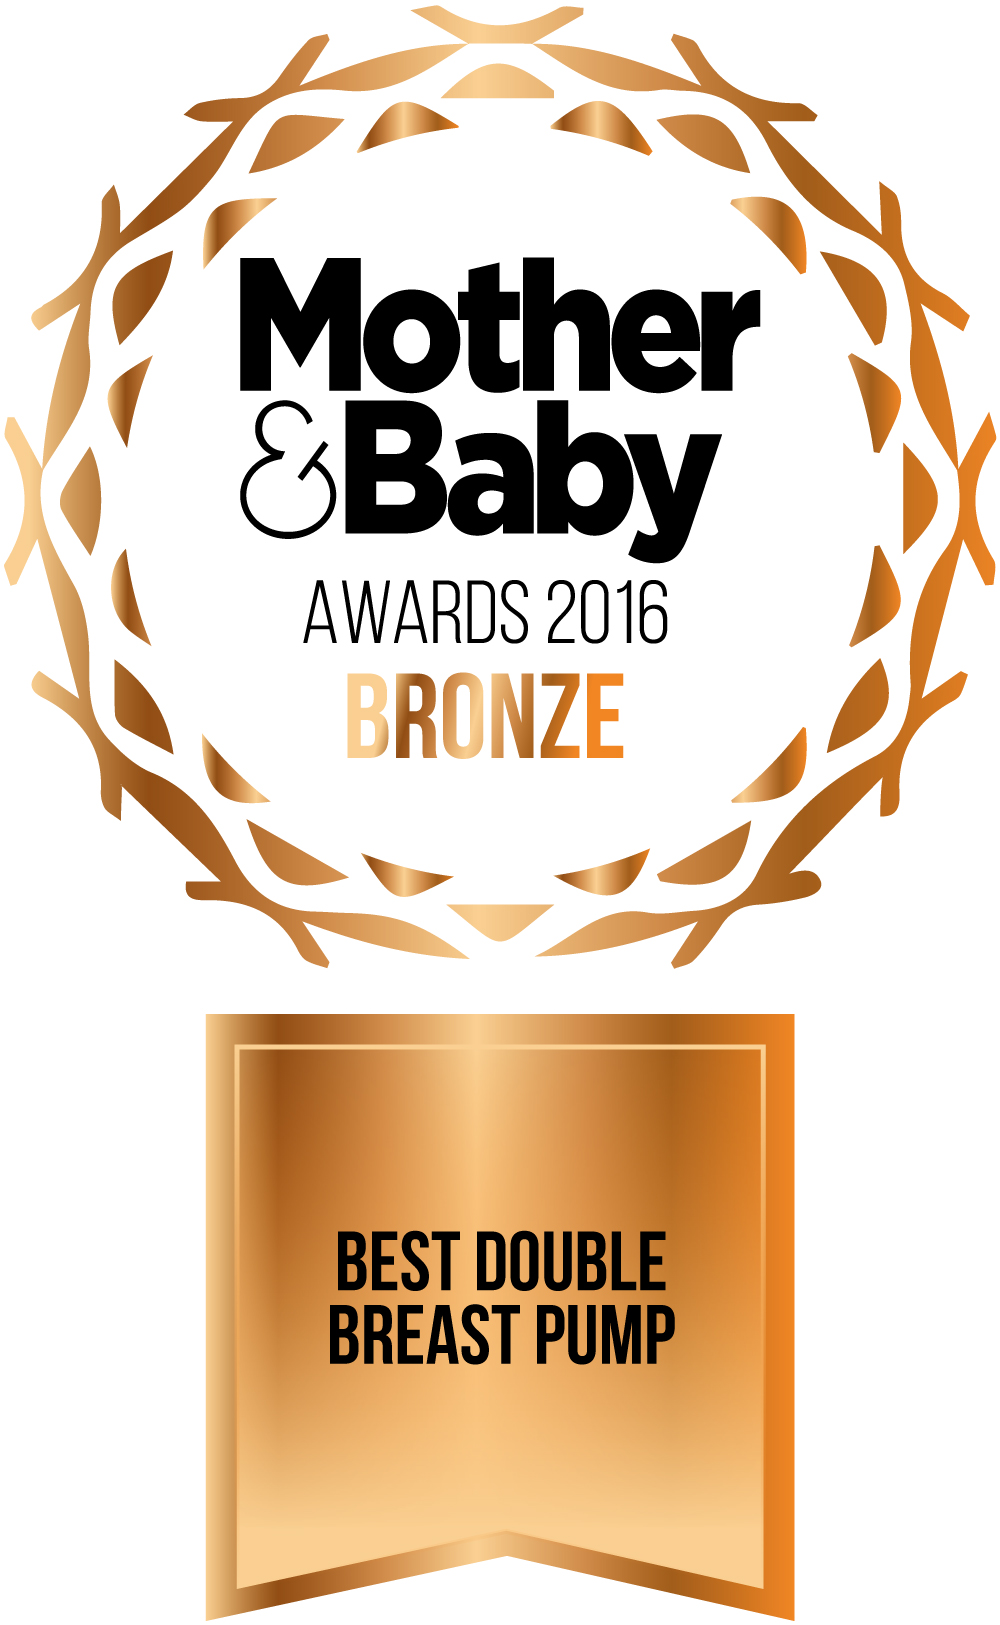 Best Double Breast Pump Award by Mother and Baby 2016